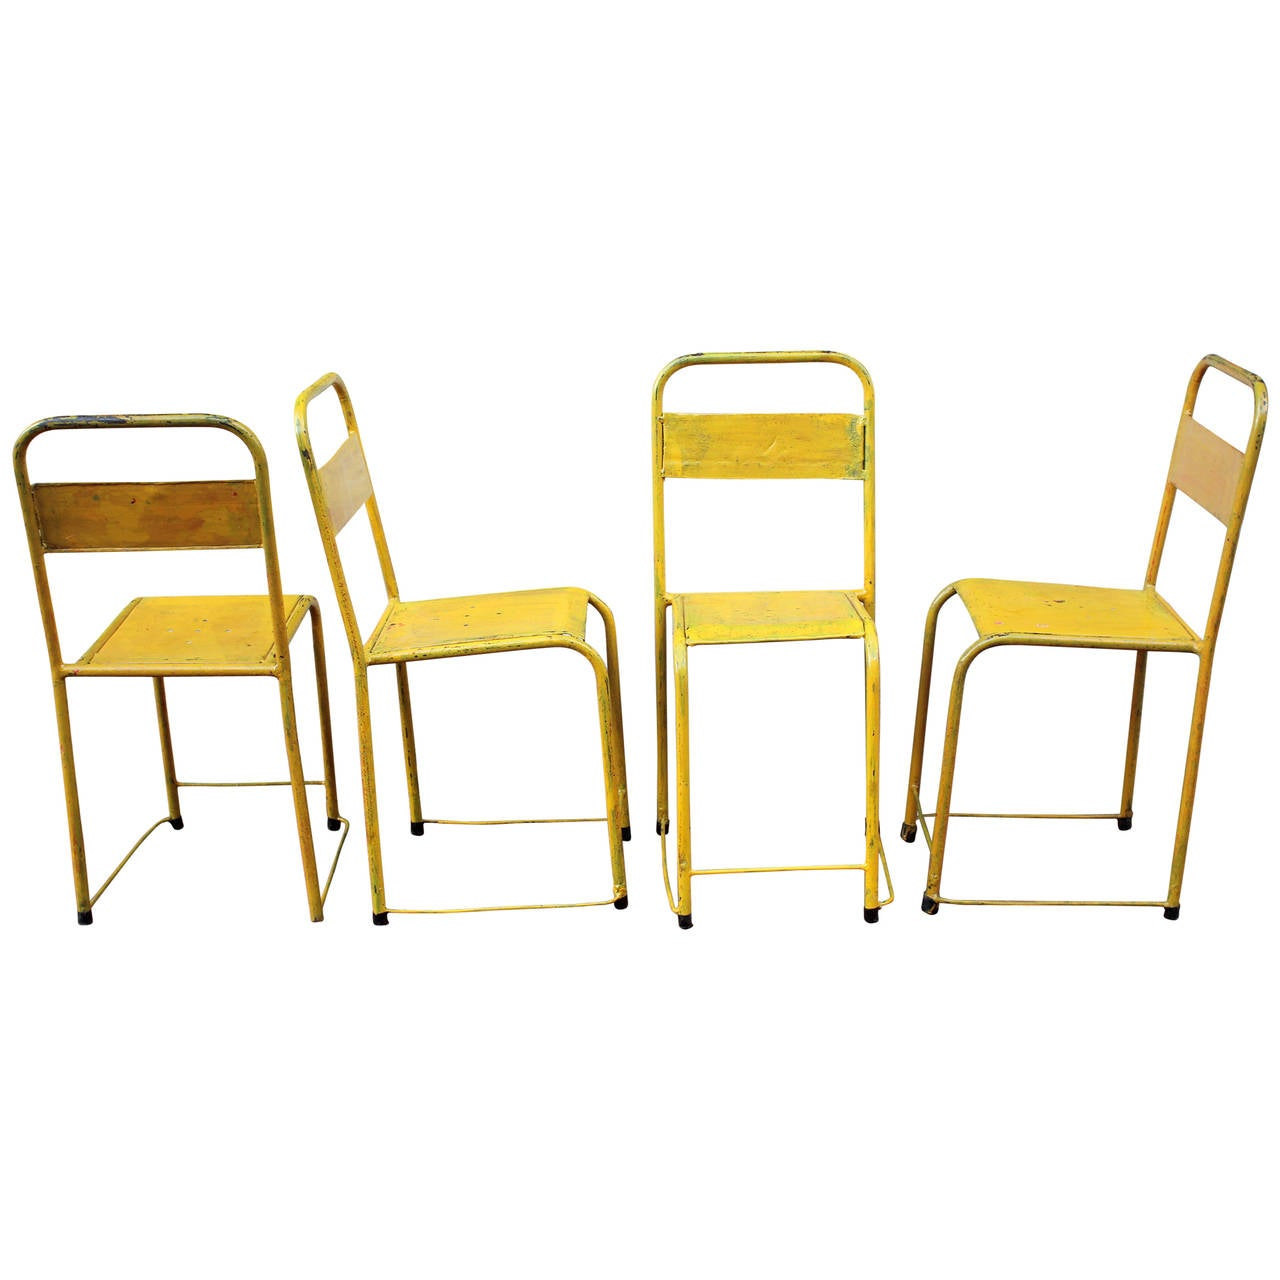 Set Of 4 Painted Metal Chairs At 1stdibs